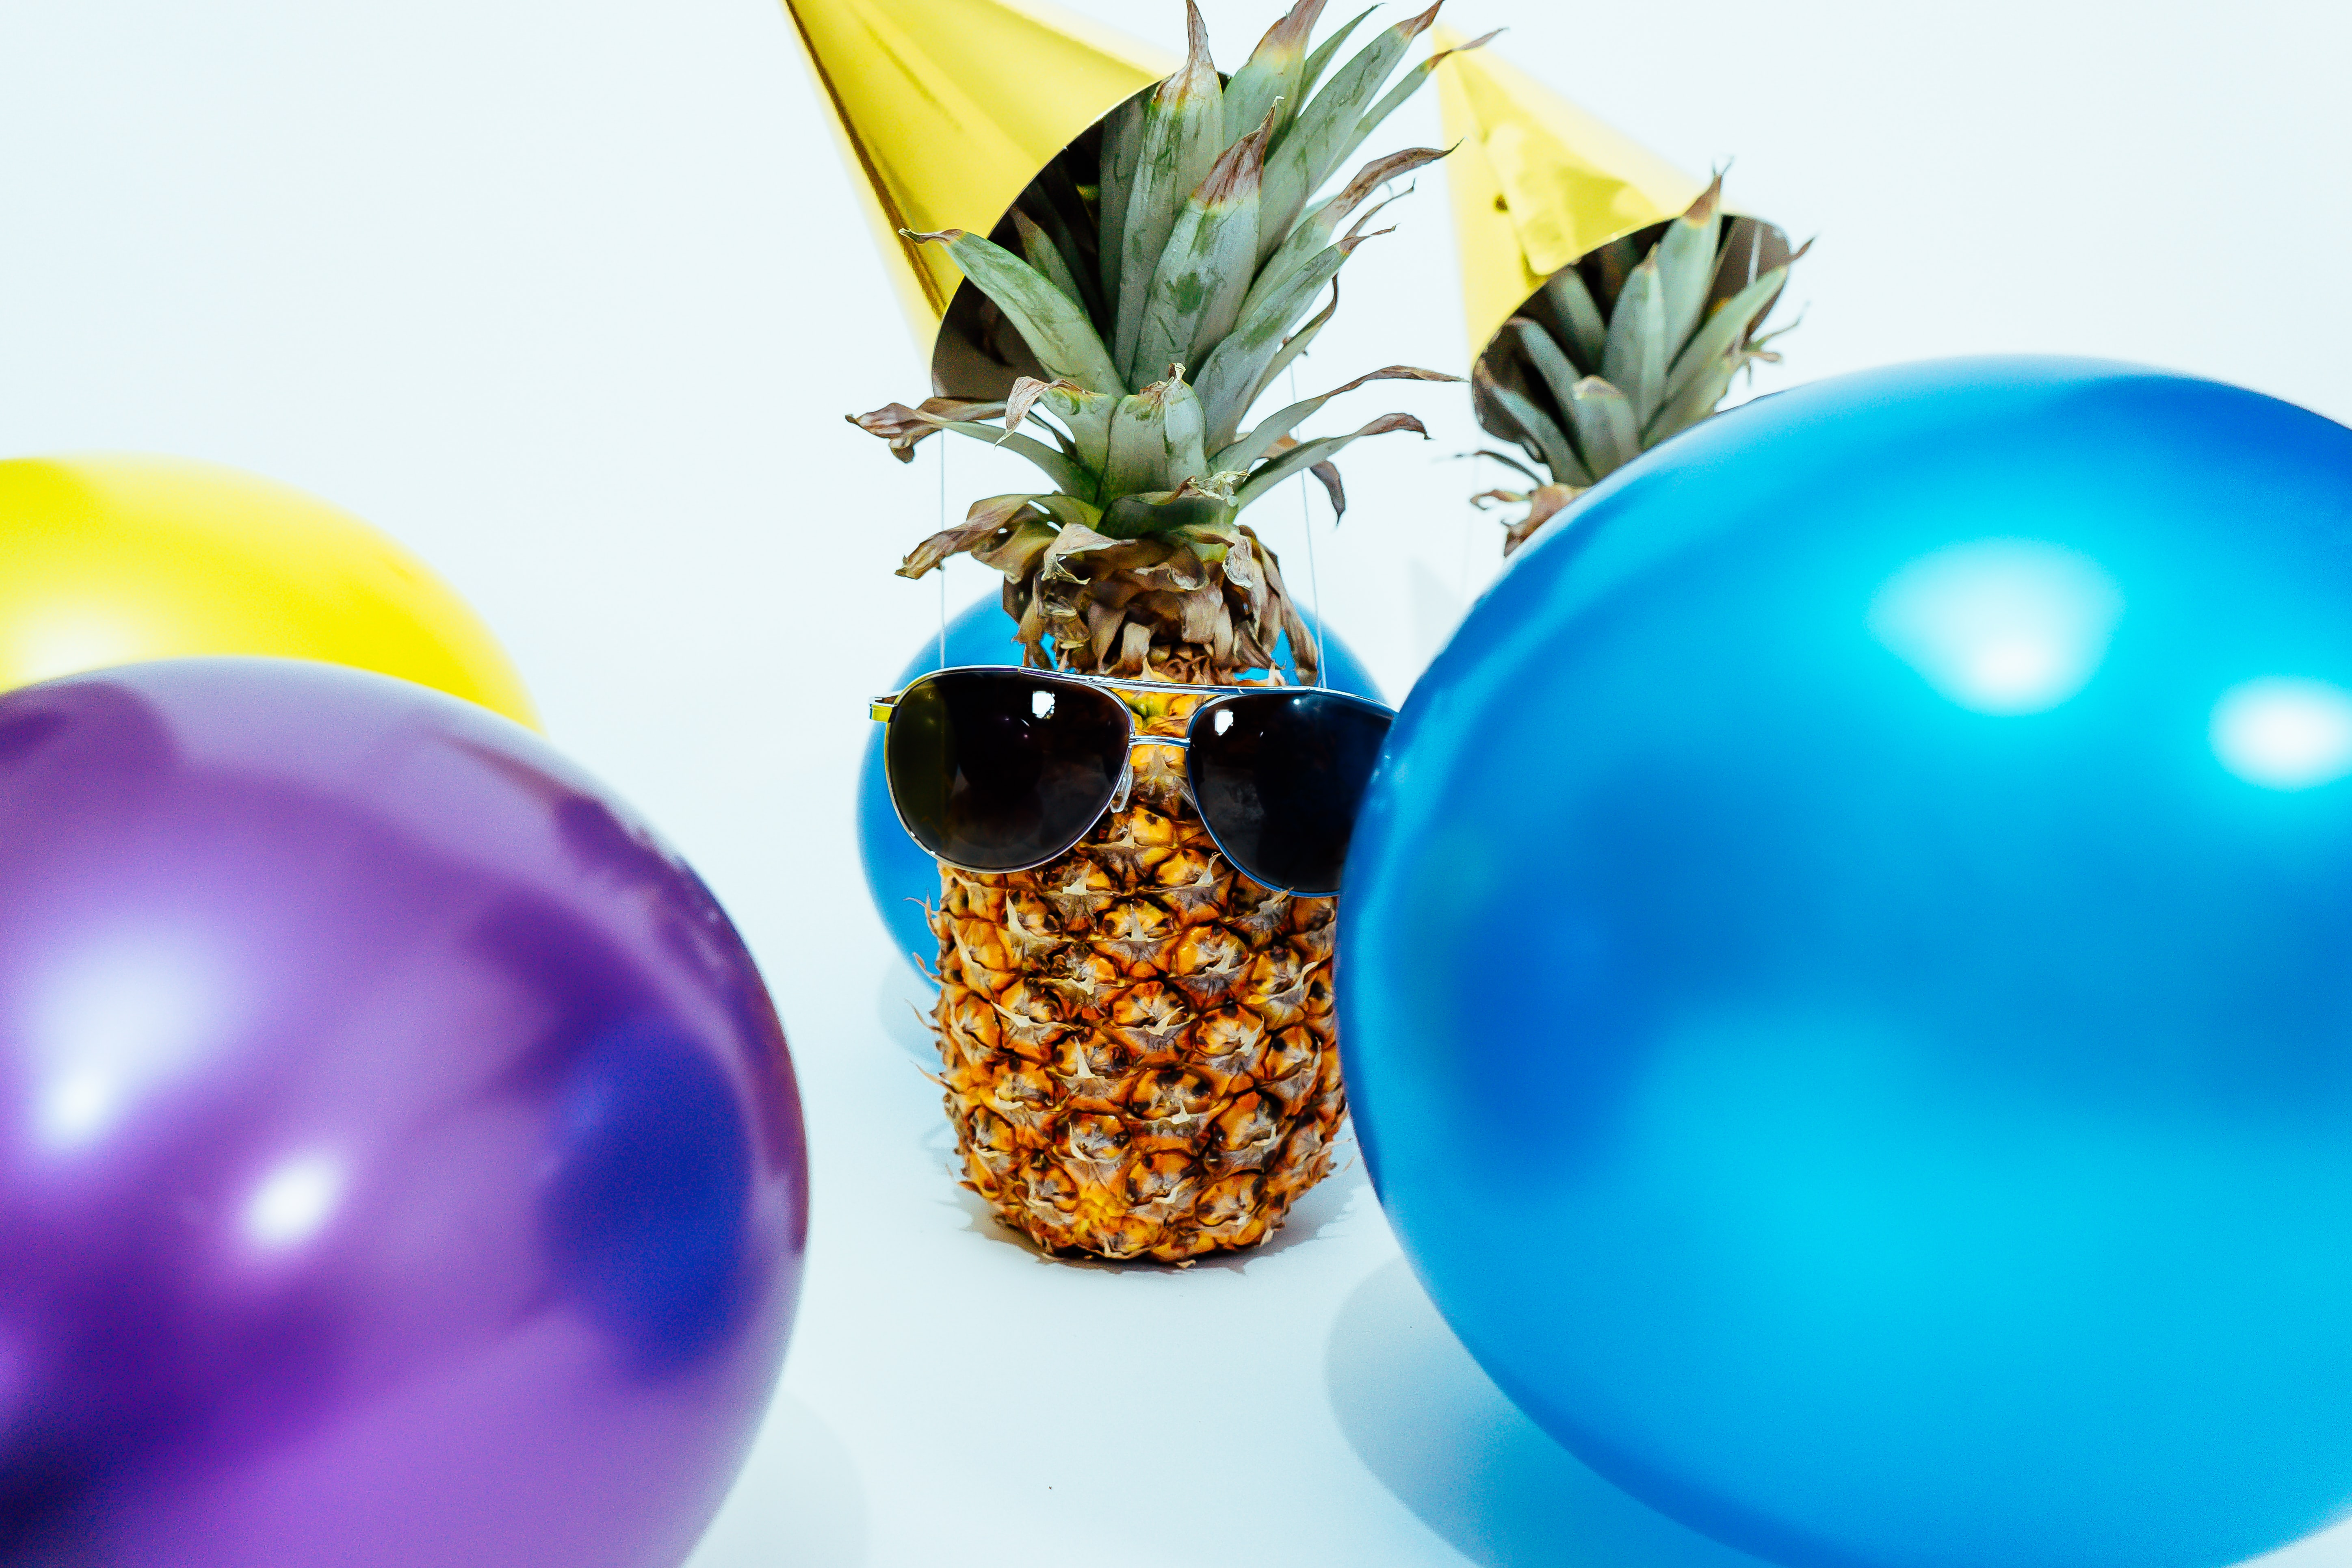 A pineapple wearing sunglasses and a party hat.